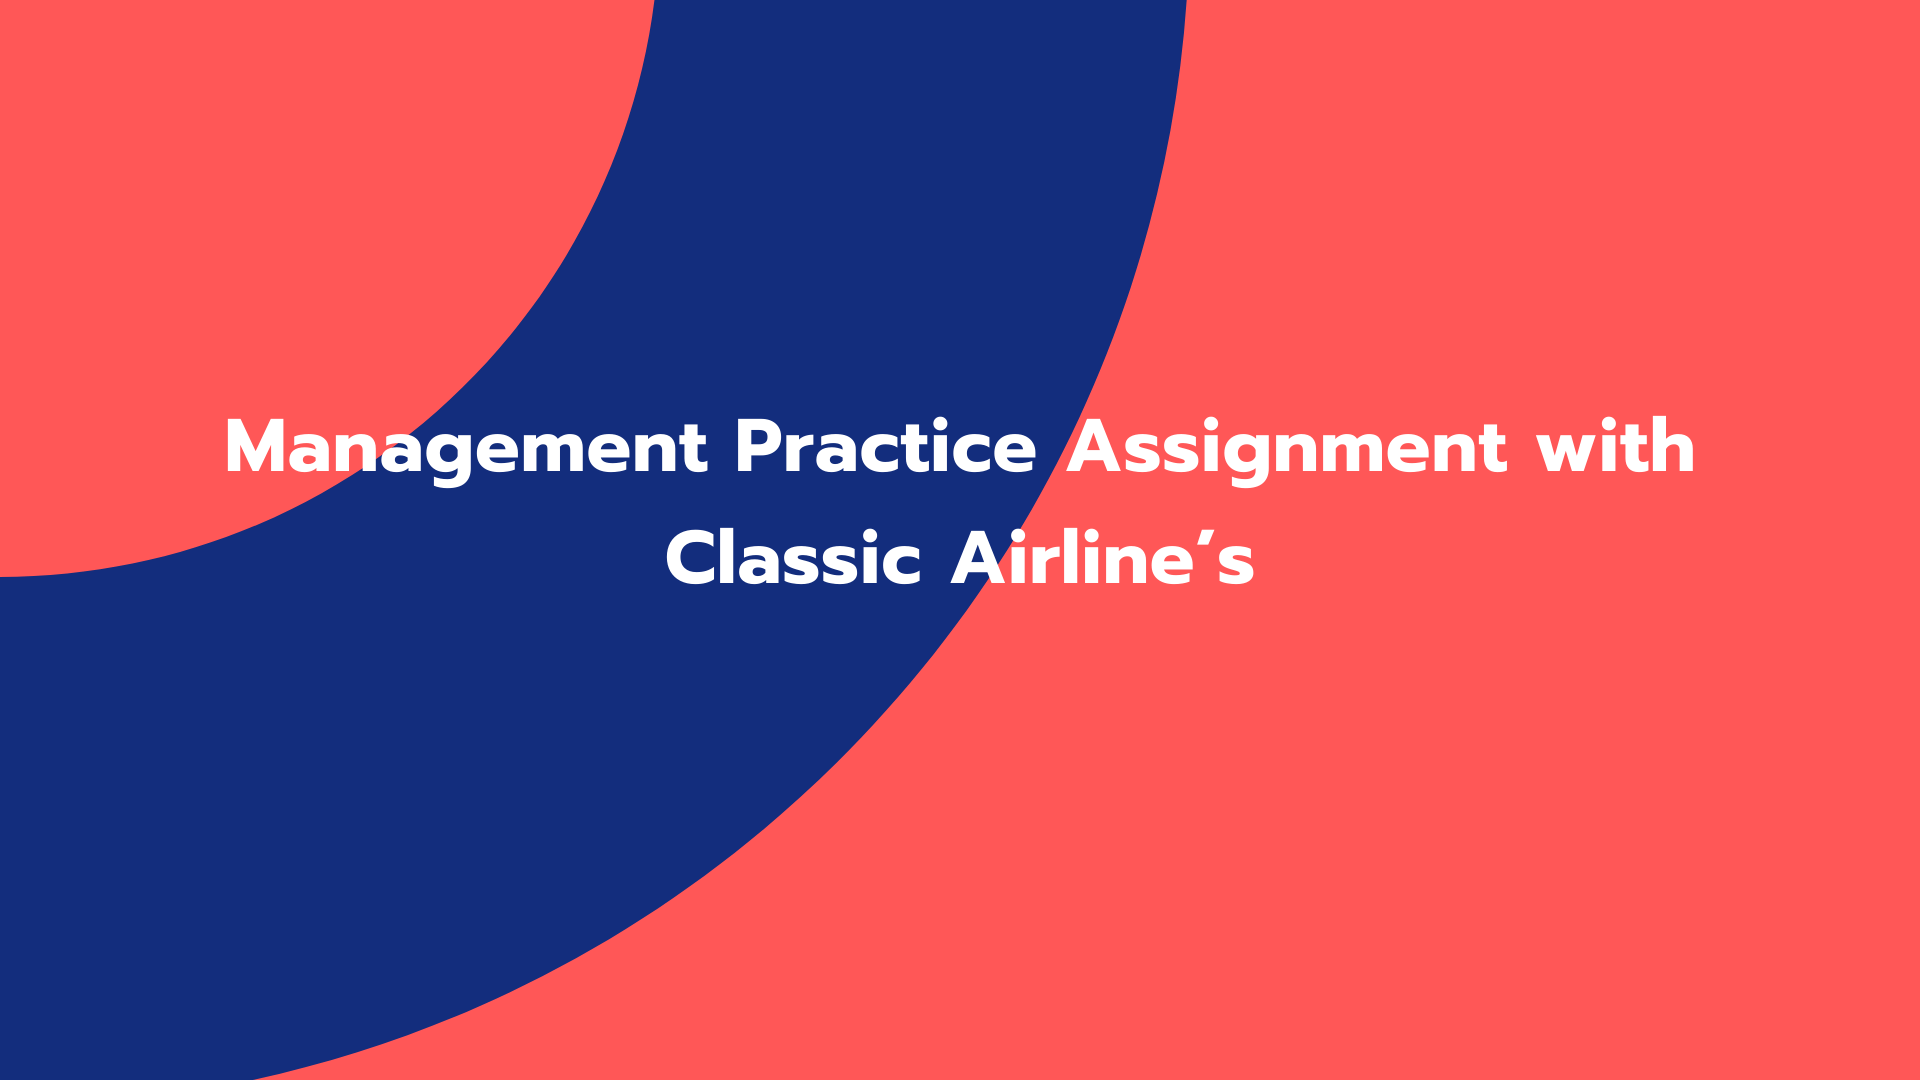 Management Practice Assignment with Classic Airline's